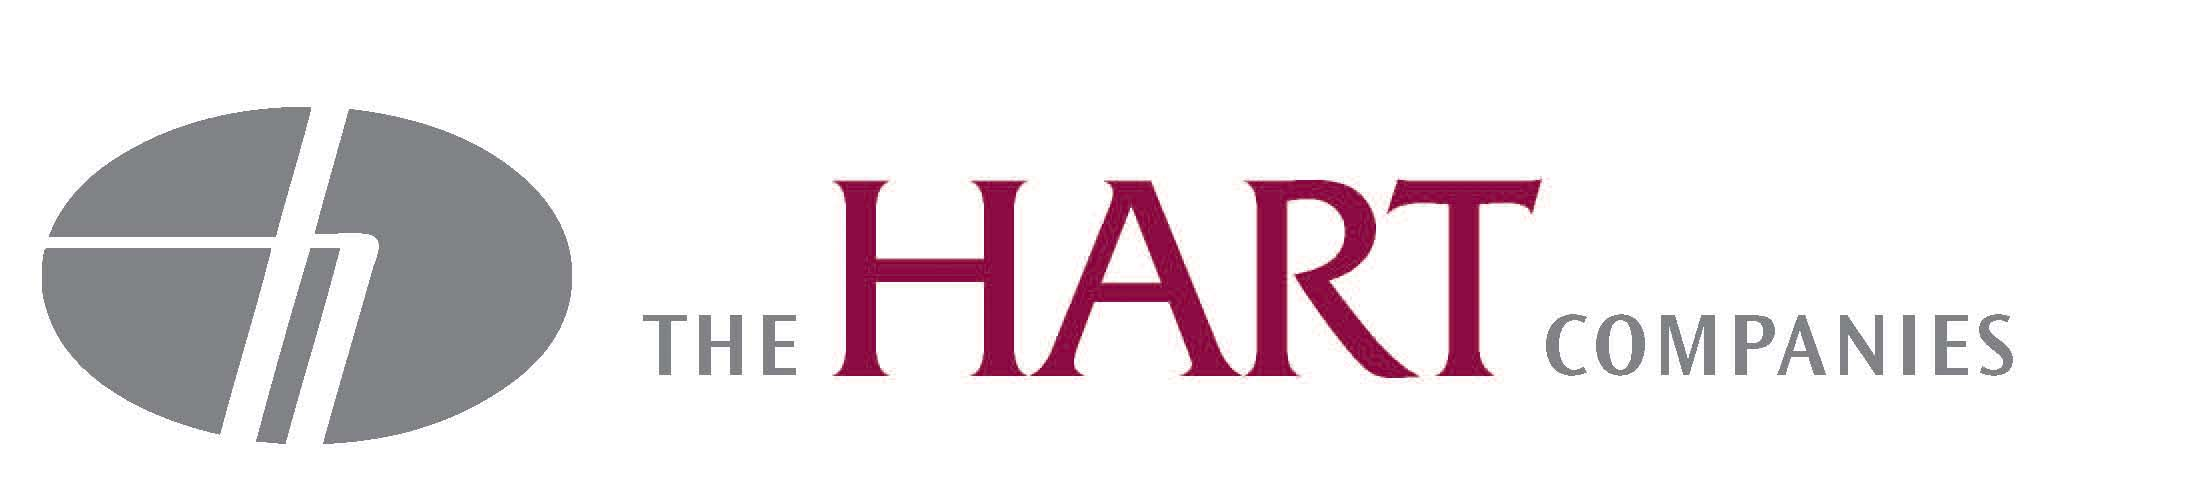 The Hart Companies logo